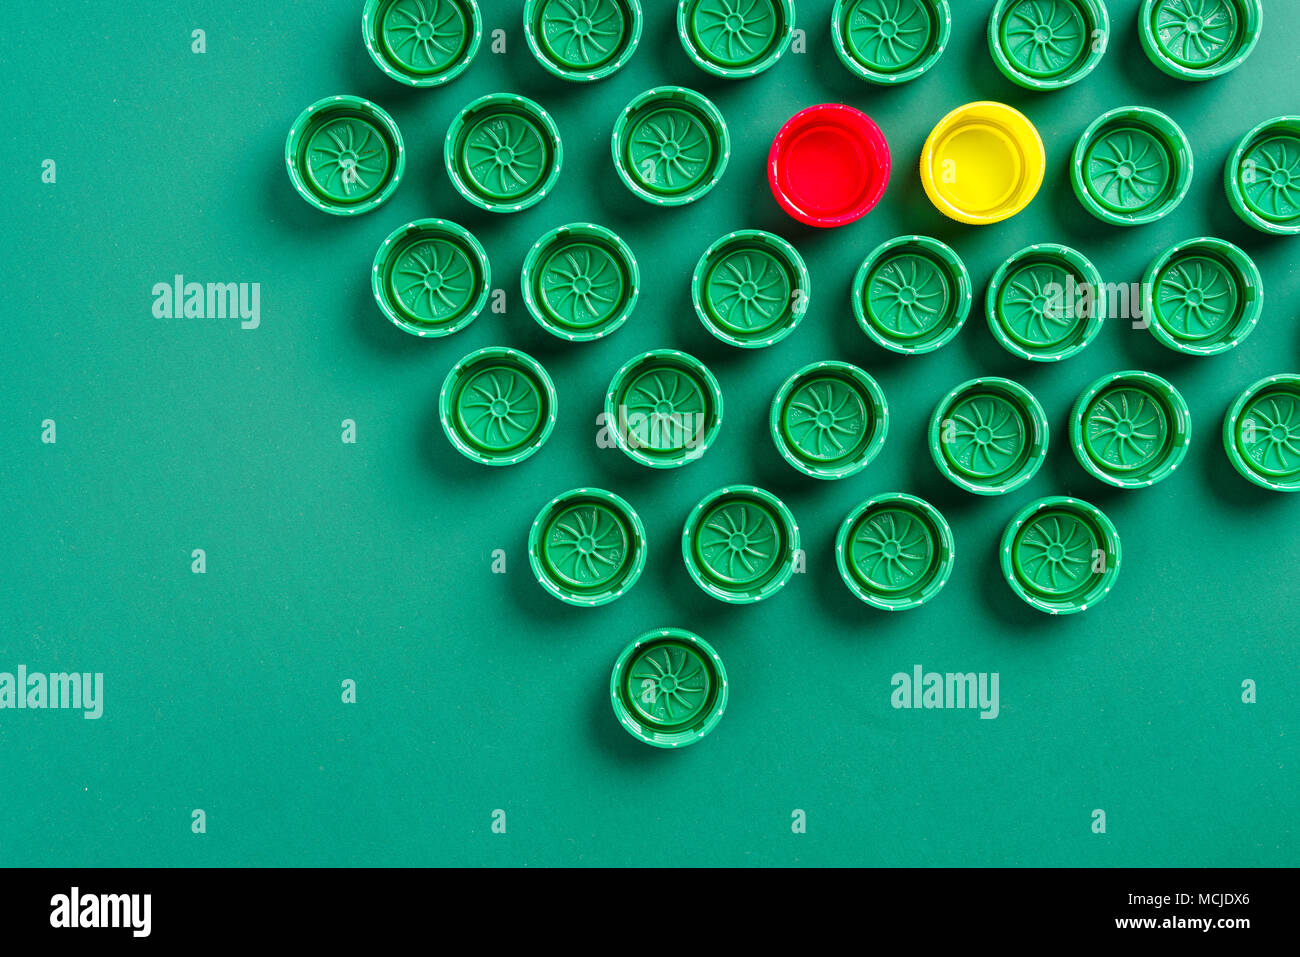 covers from bottles in the form of a mosaic - Stock Image